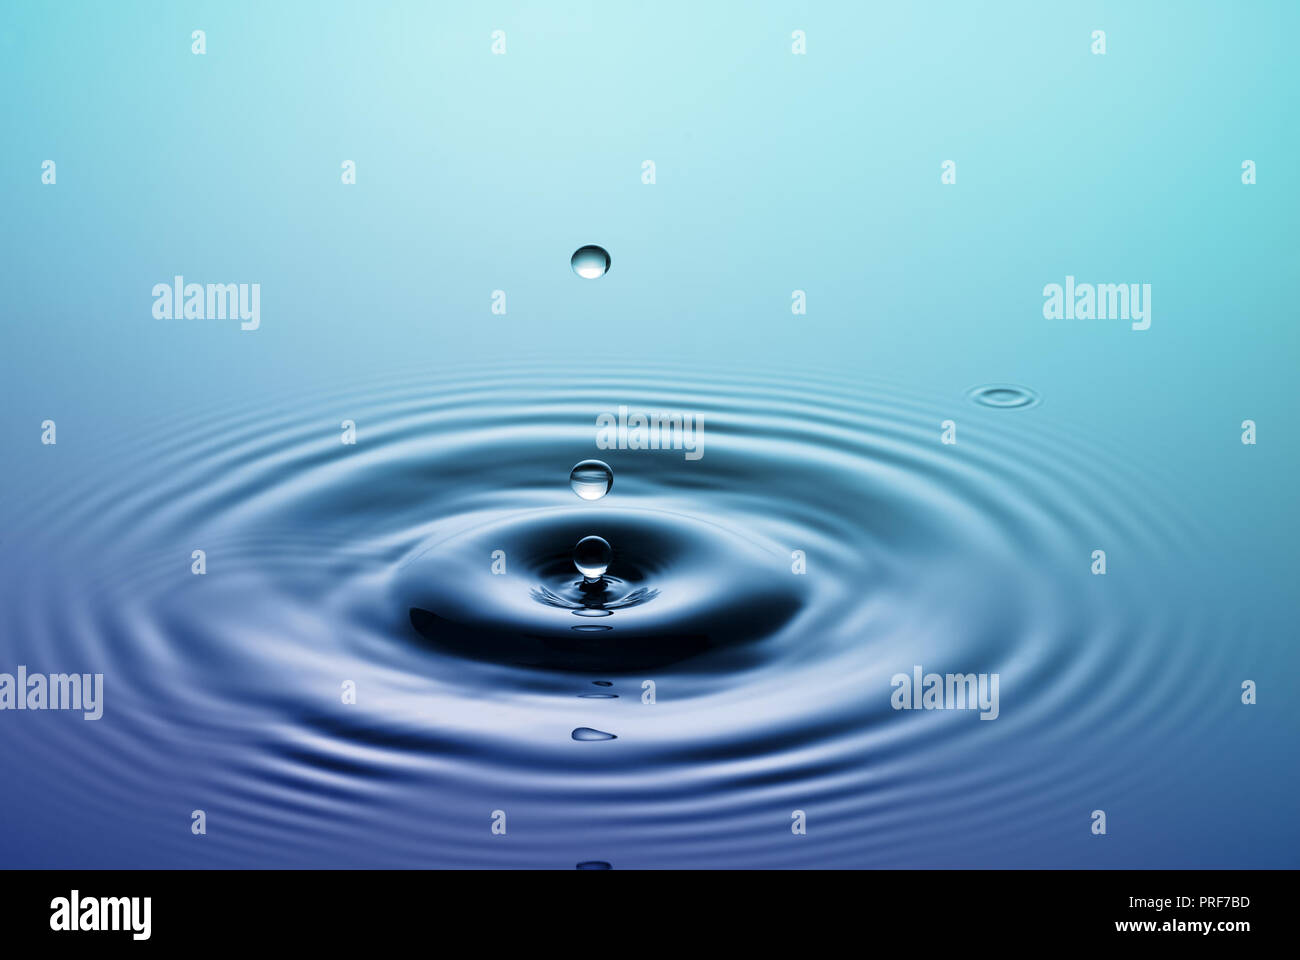 Water Splash Falling Drop Of Rain Stock Photo Alamy